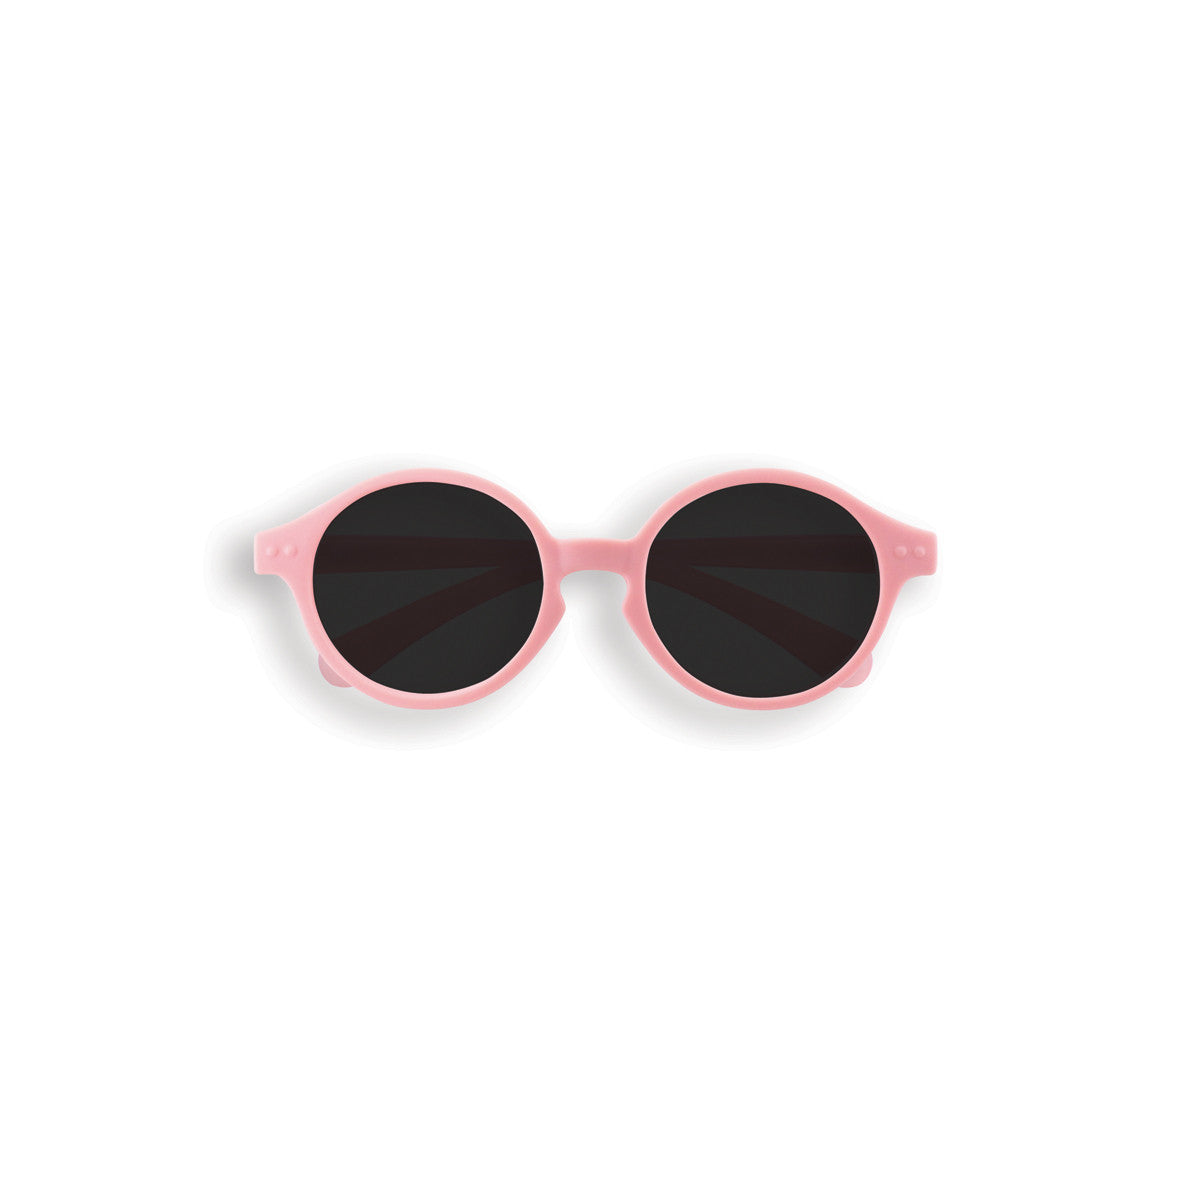 SUN KIDS BABY SUNGLASSES / 0-12 MONTHS / PASTEL PINK